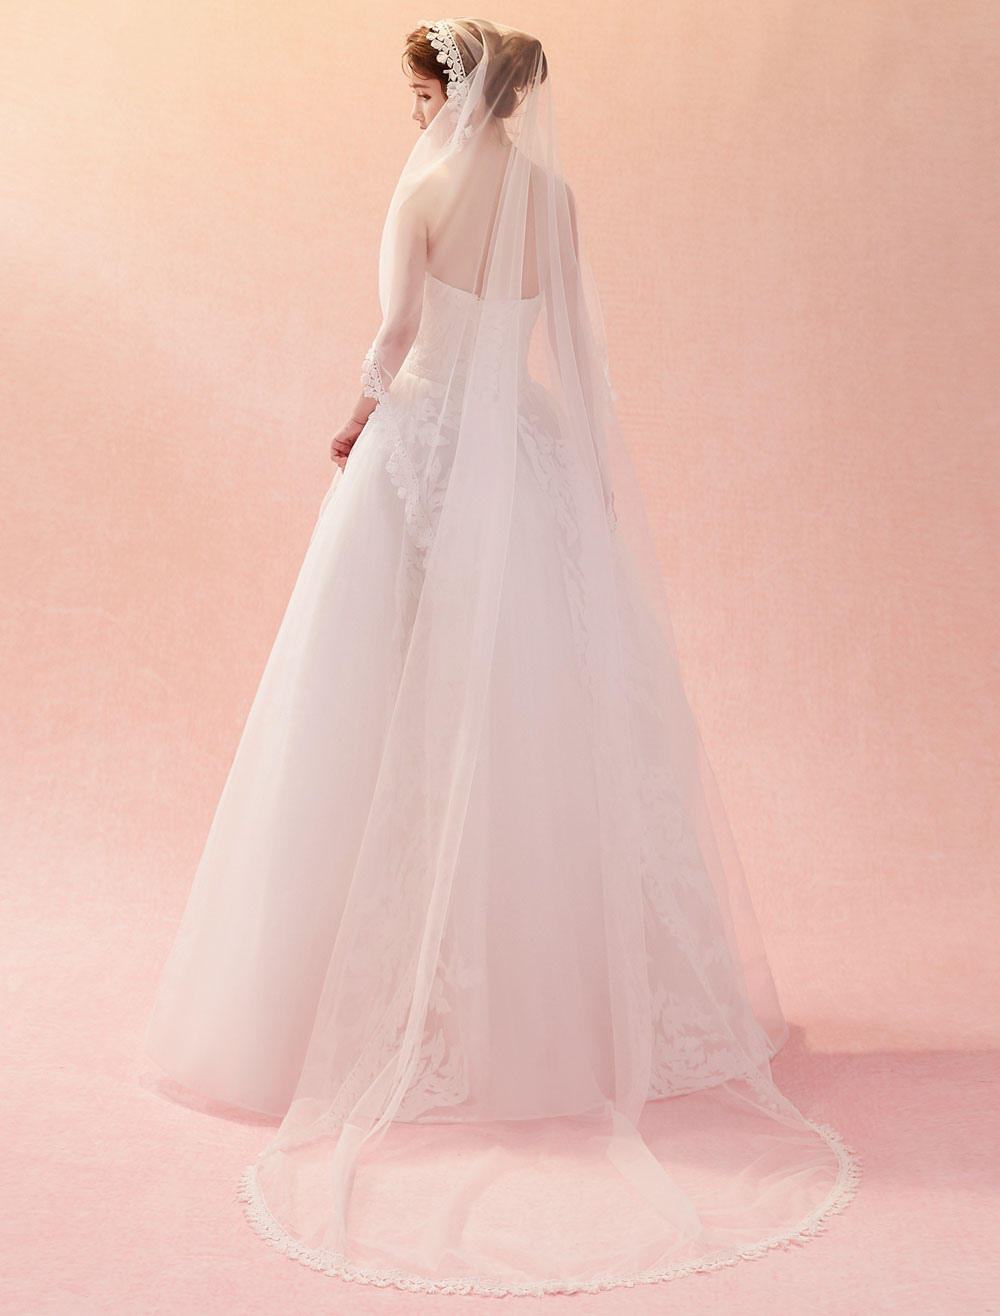 Buy Wedding Veil Cathedral Waterfall Lace Applique Tassels Tulle One Tier Long Bridal Veils for $17.99 in Milanoo store